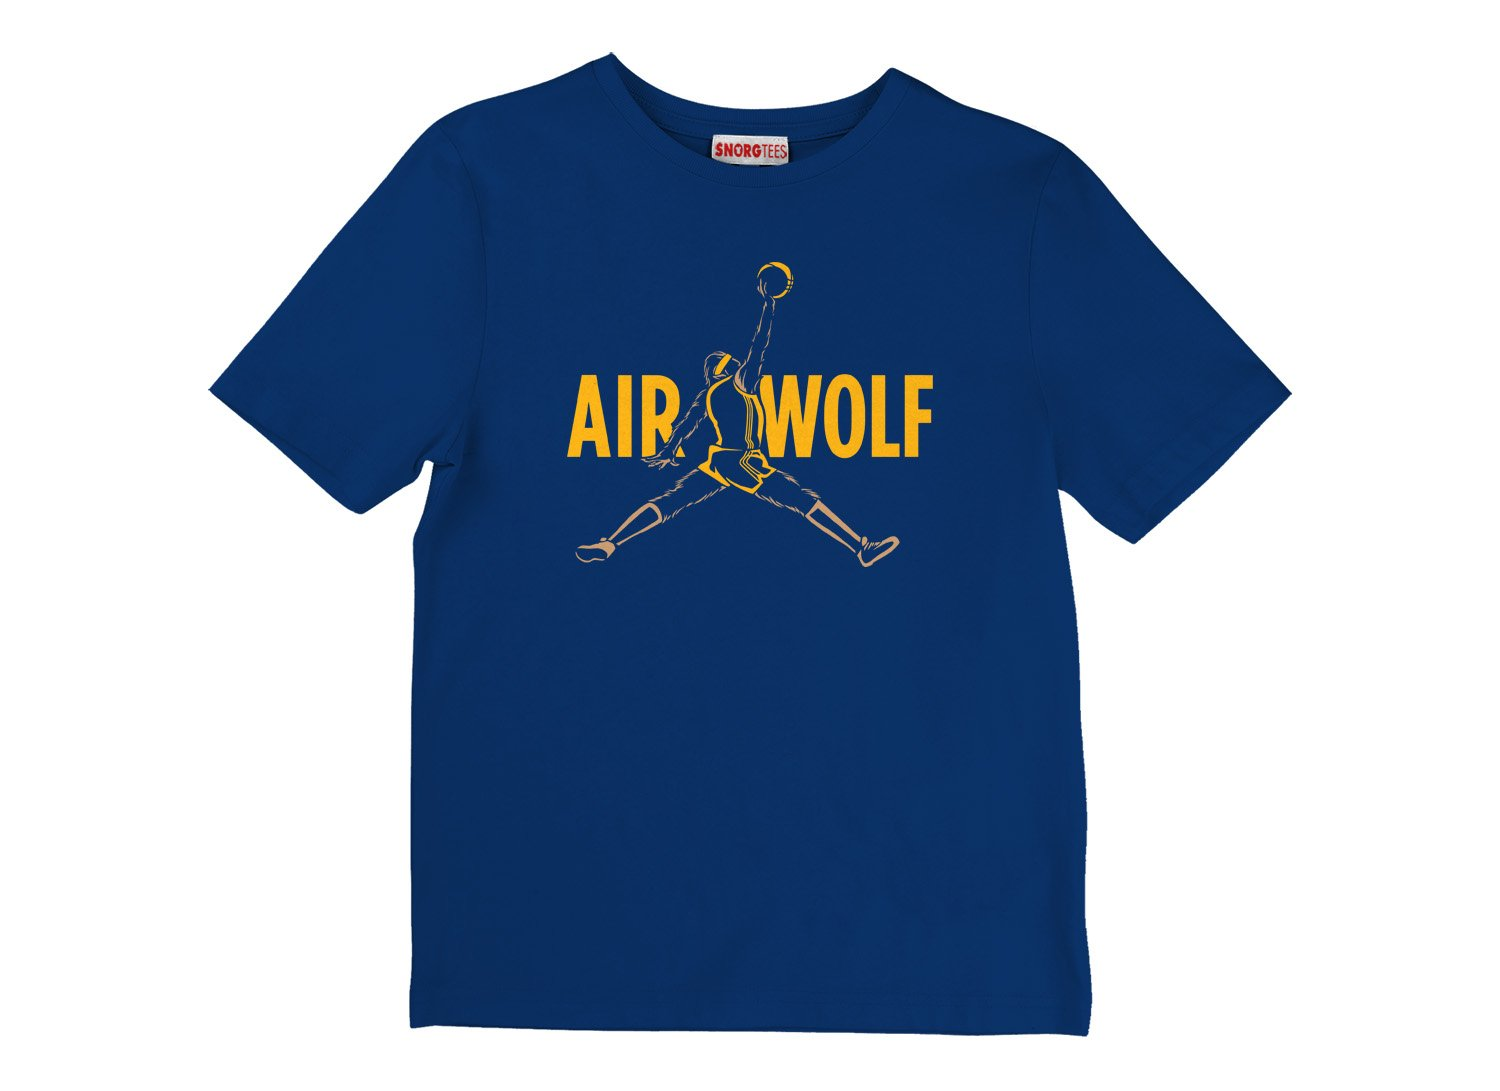 Air Wolf on Kids T-Shirt